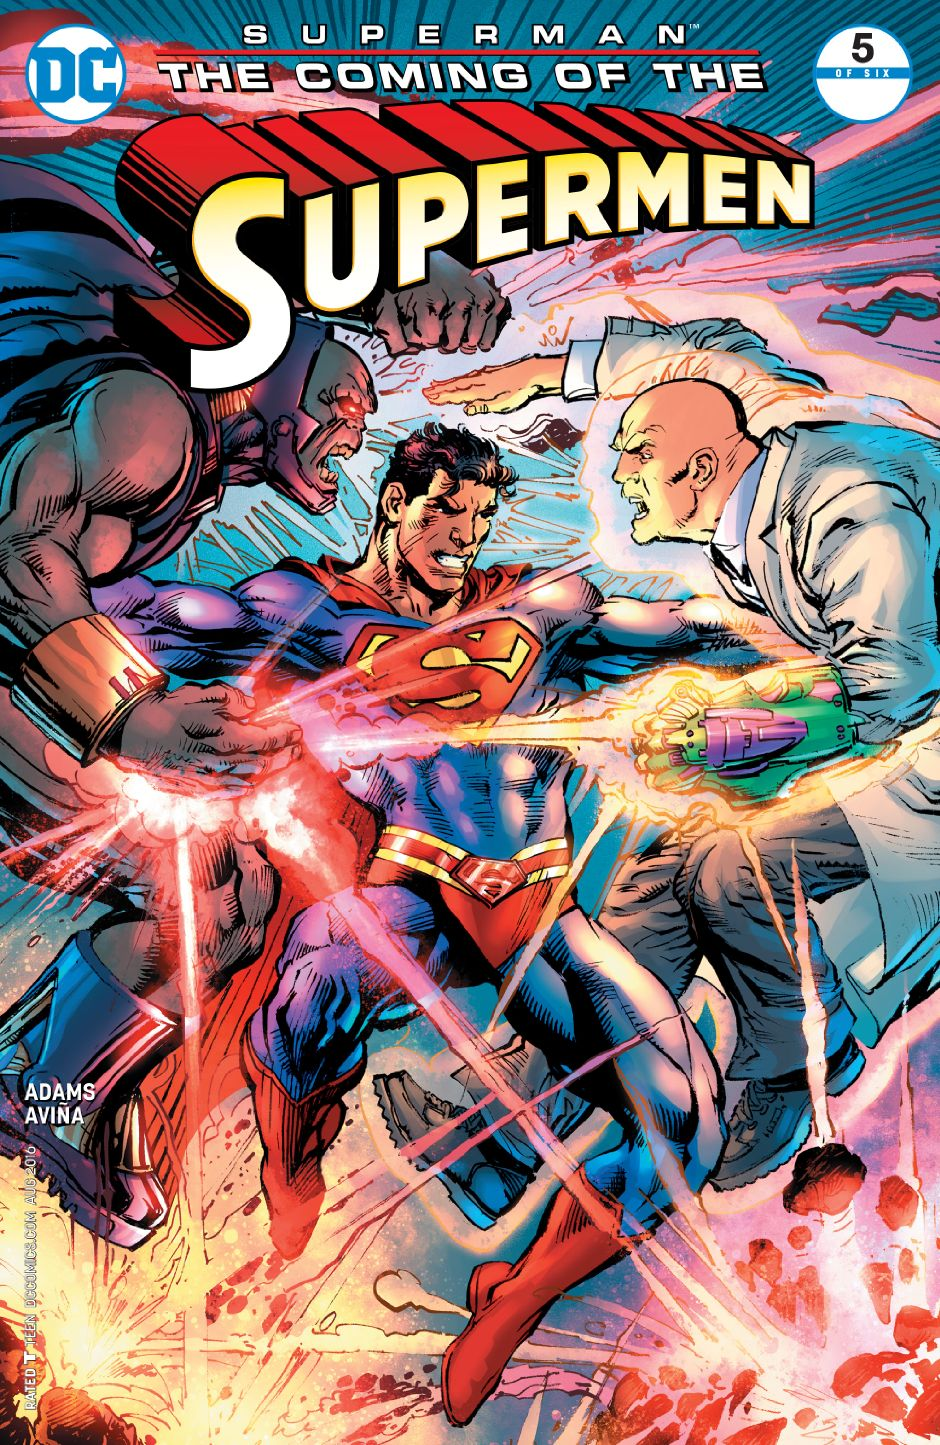 Superman: The Coming of the Supermen Vol 1 5